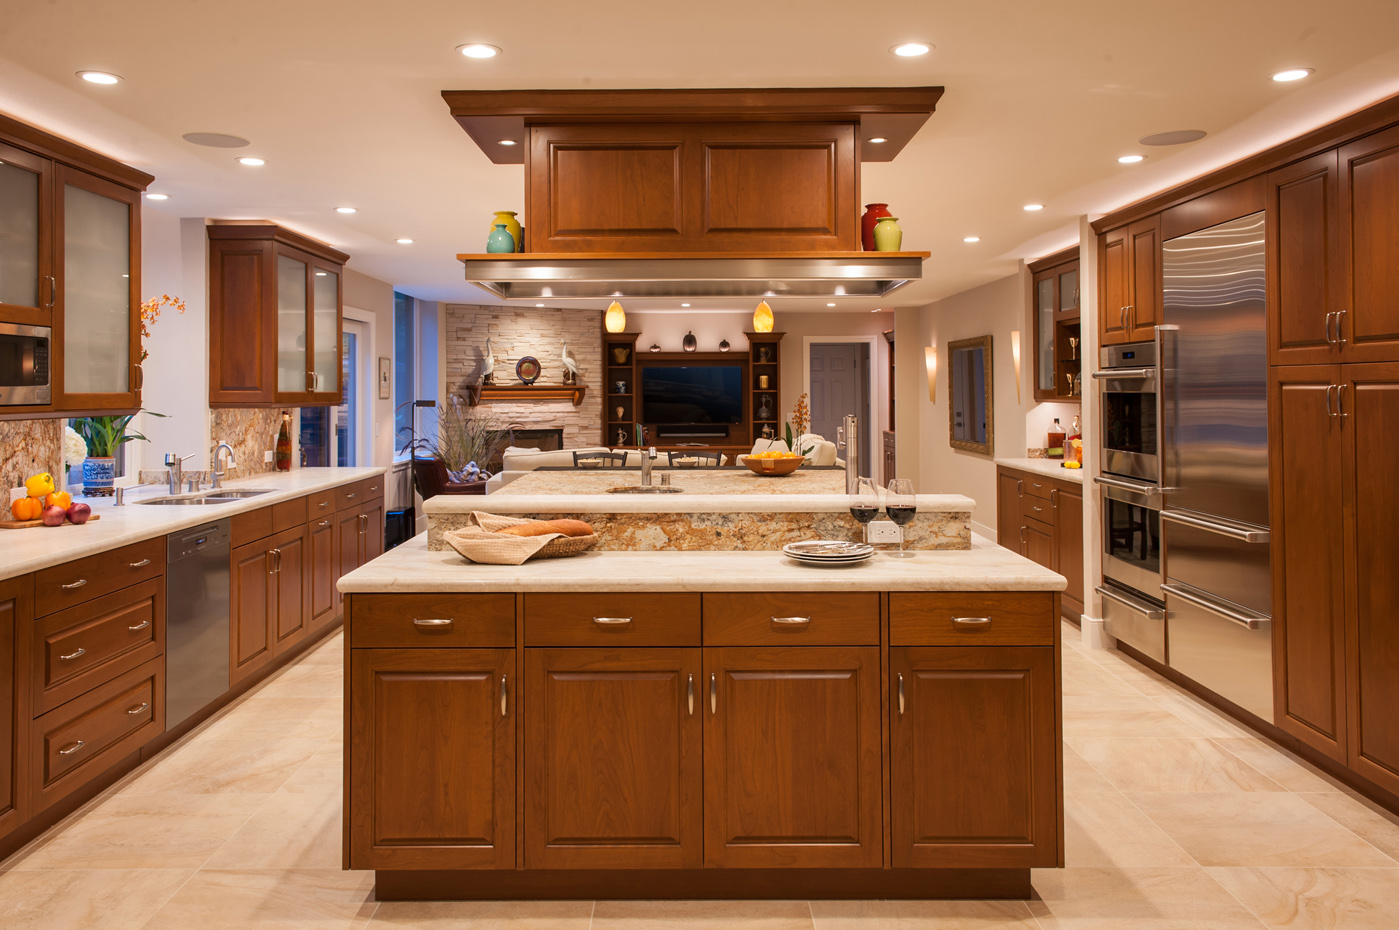 The custom hood and cabinetry are cherry with stainless steel accents.